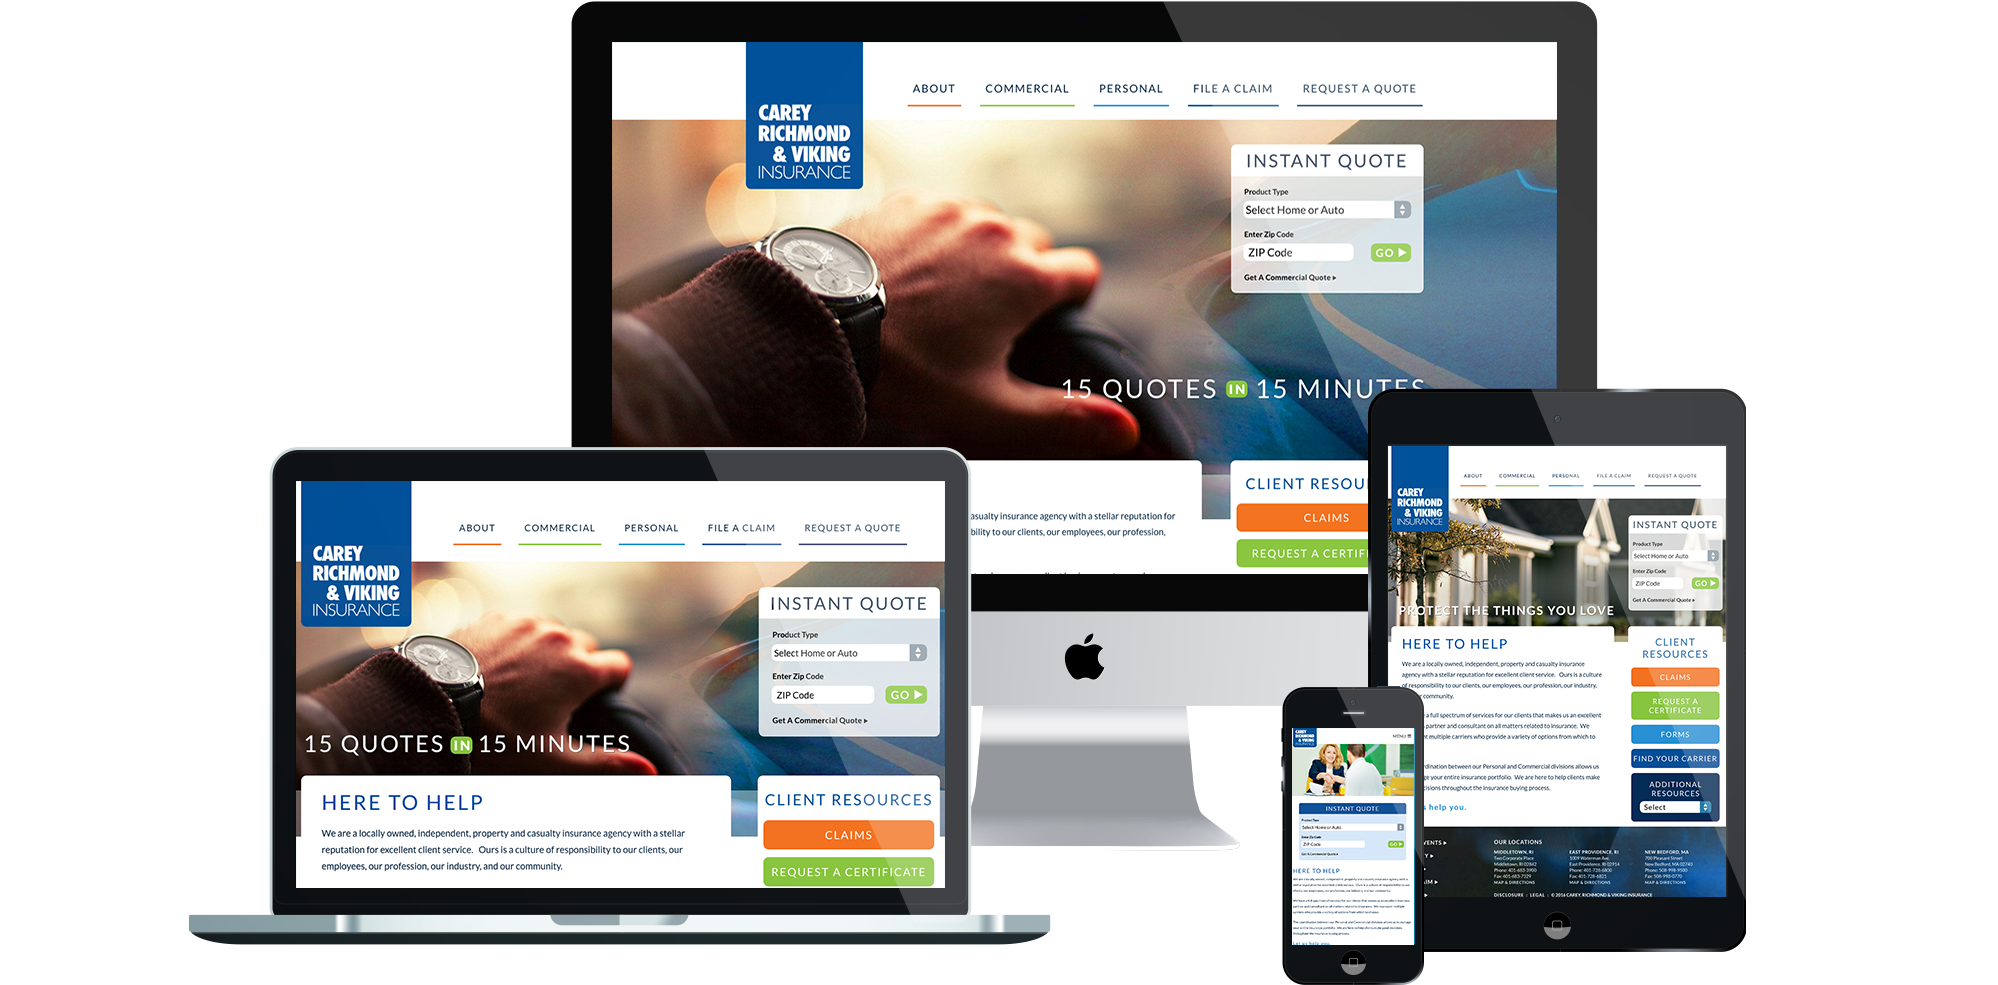 Carey, Richmond & Viking Insurance Responsive Web Design and Development